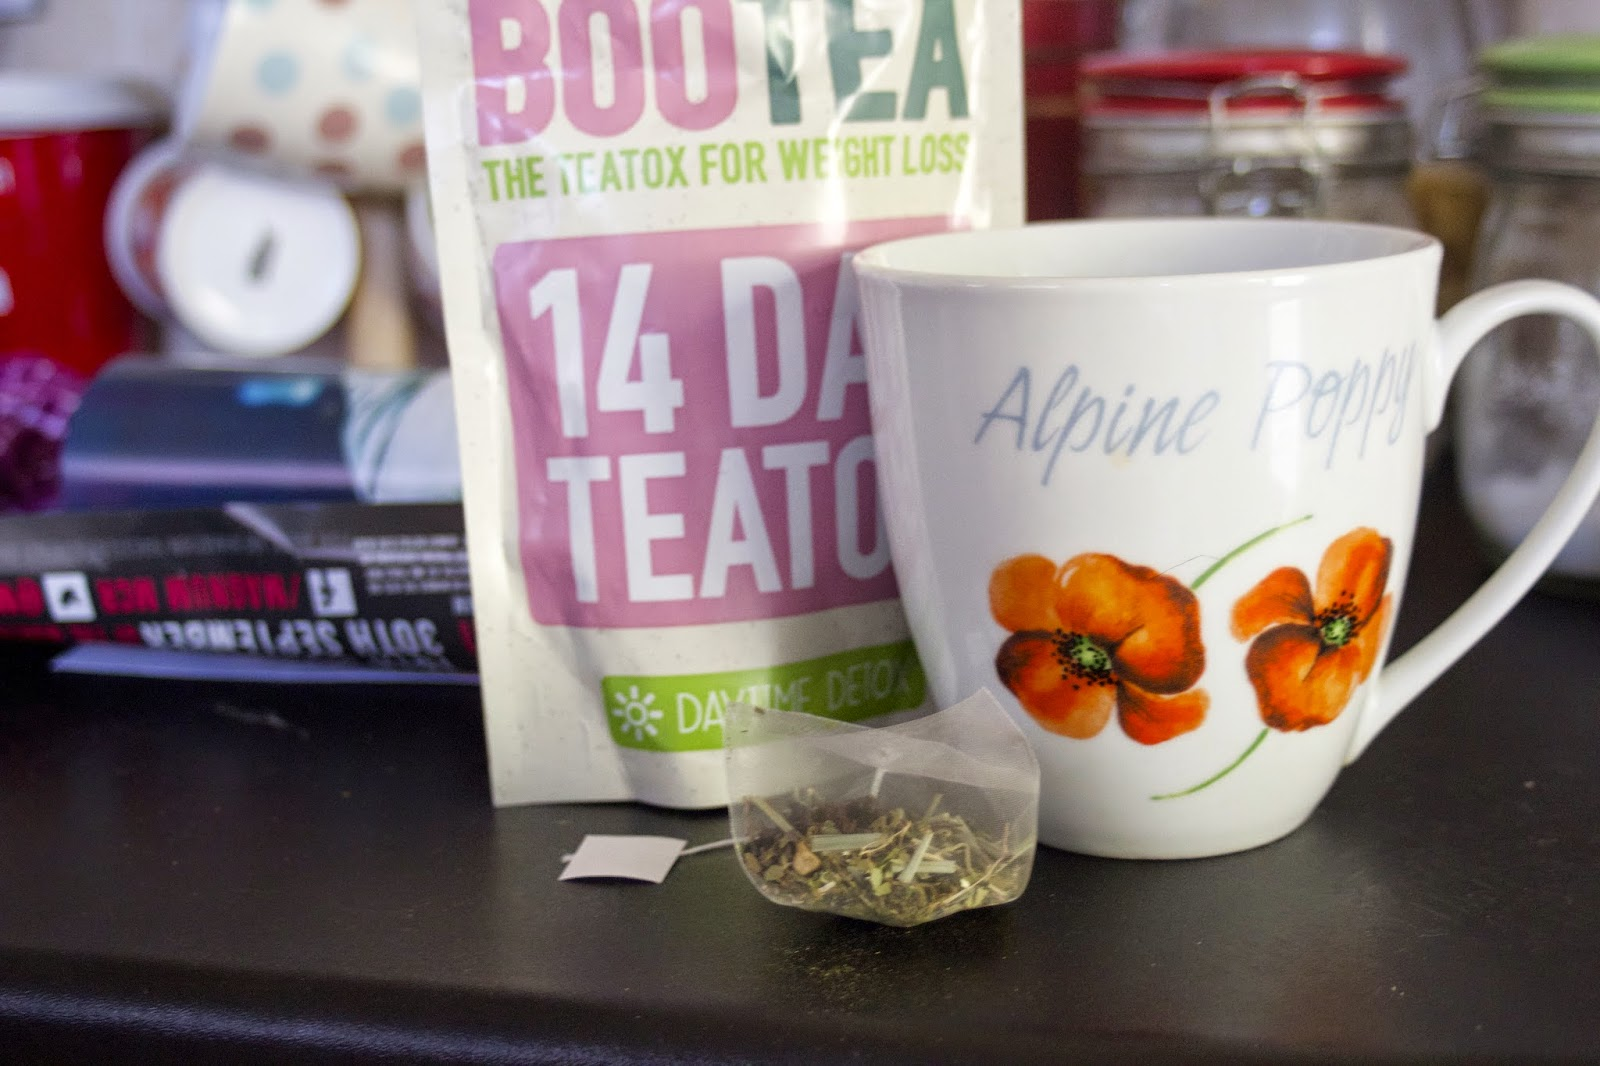 http://www.cocotulips.com/2014/09/bootea-14-say-teatox-my-initial-thoughts.html